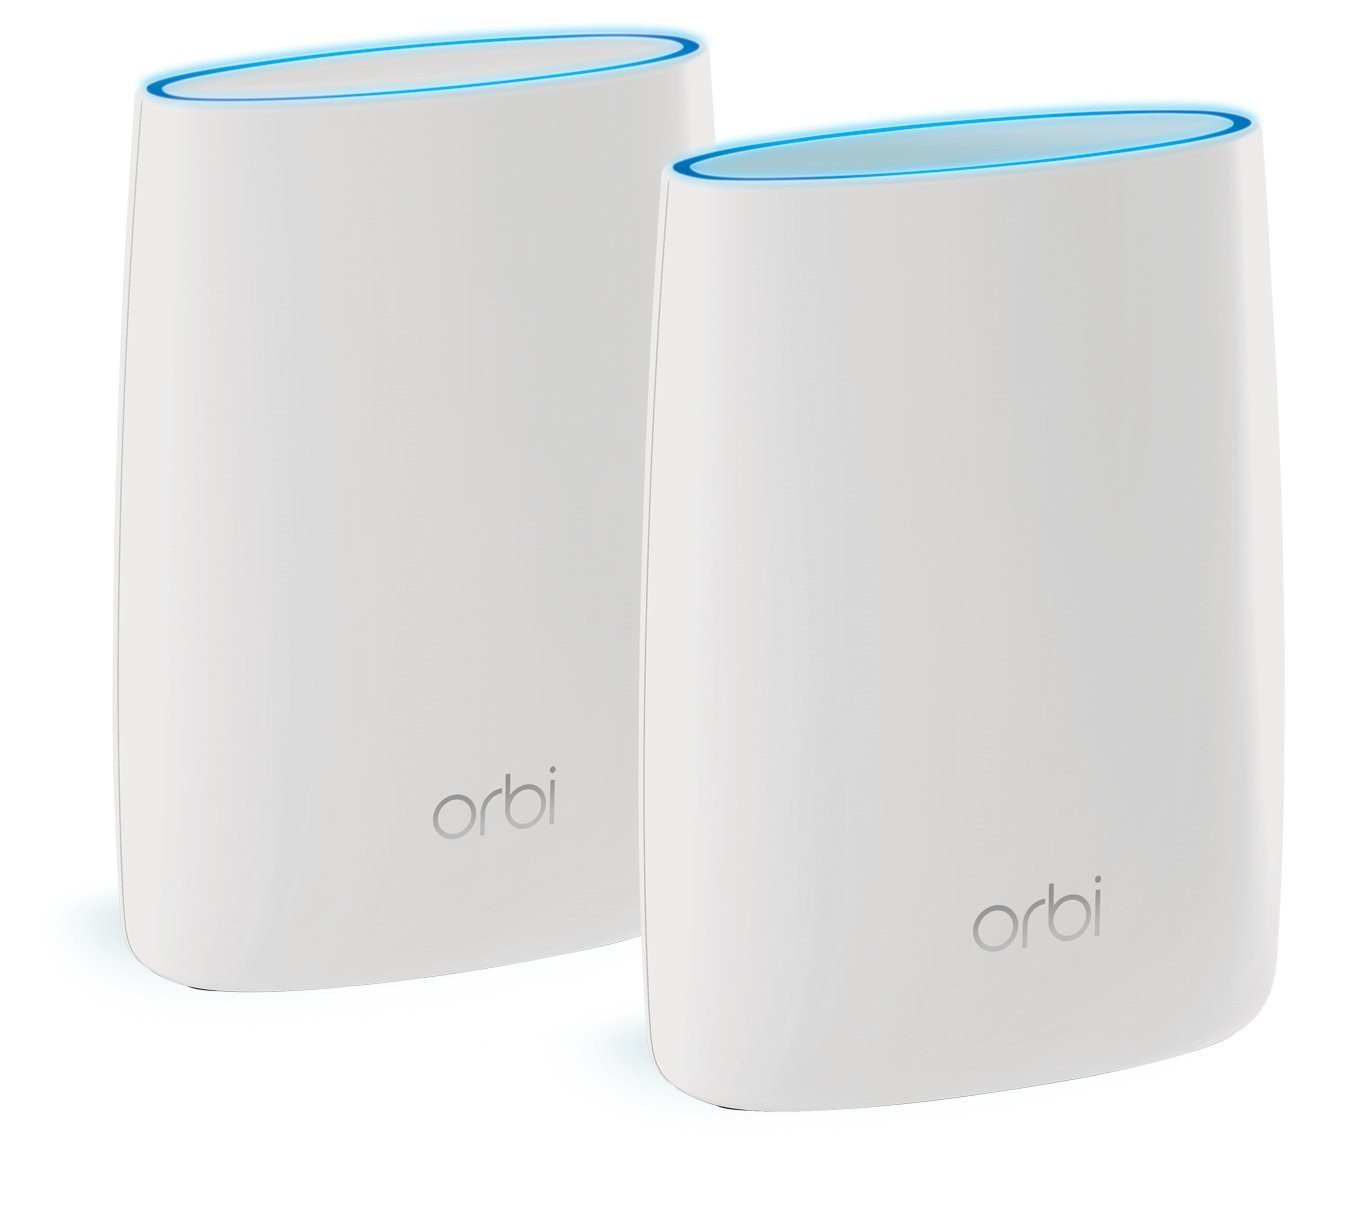 netgear-orbi-high-performance-ac3000-tri-brand-wifi-system